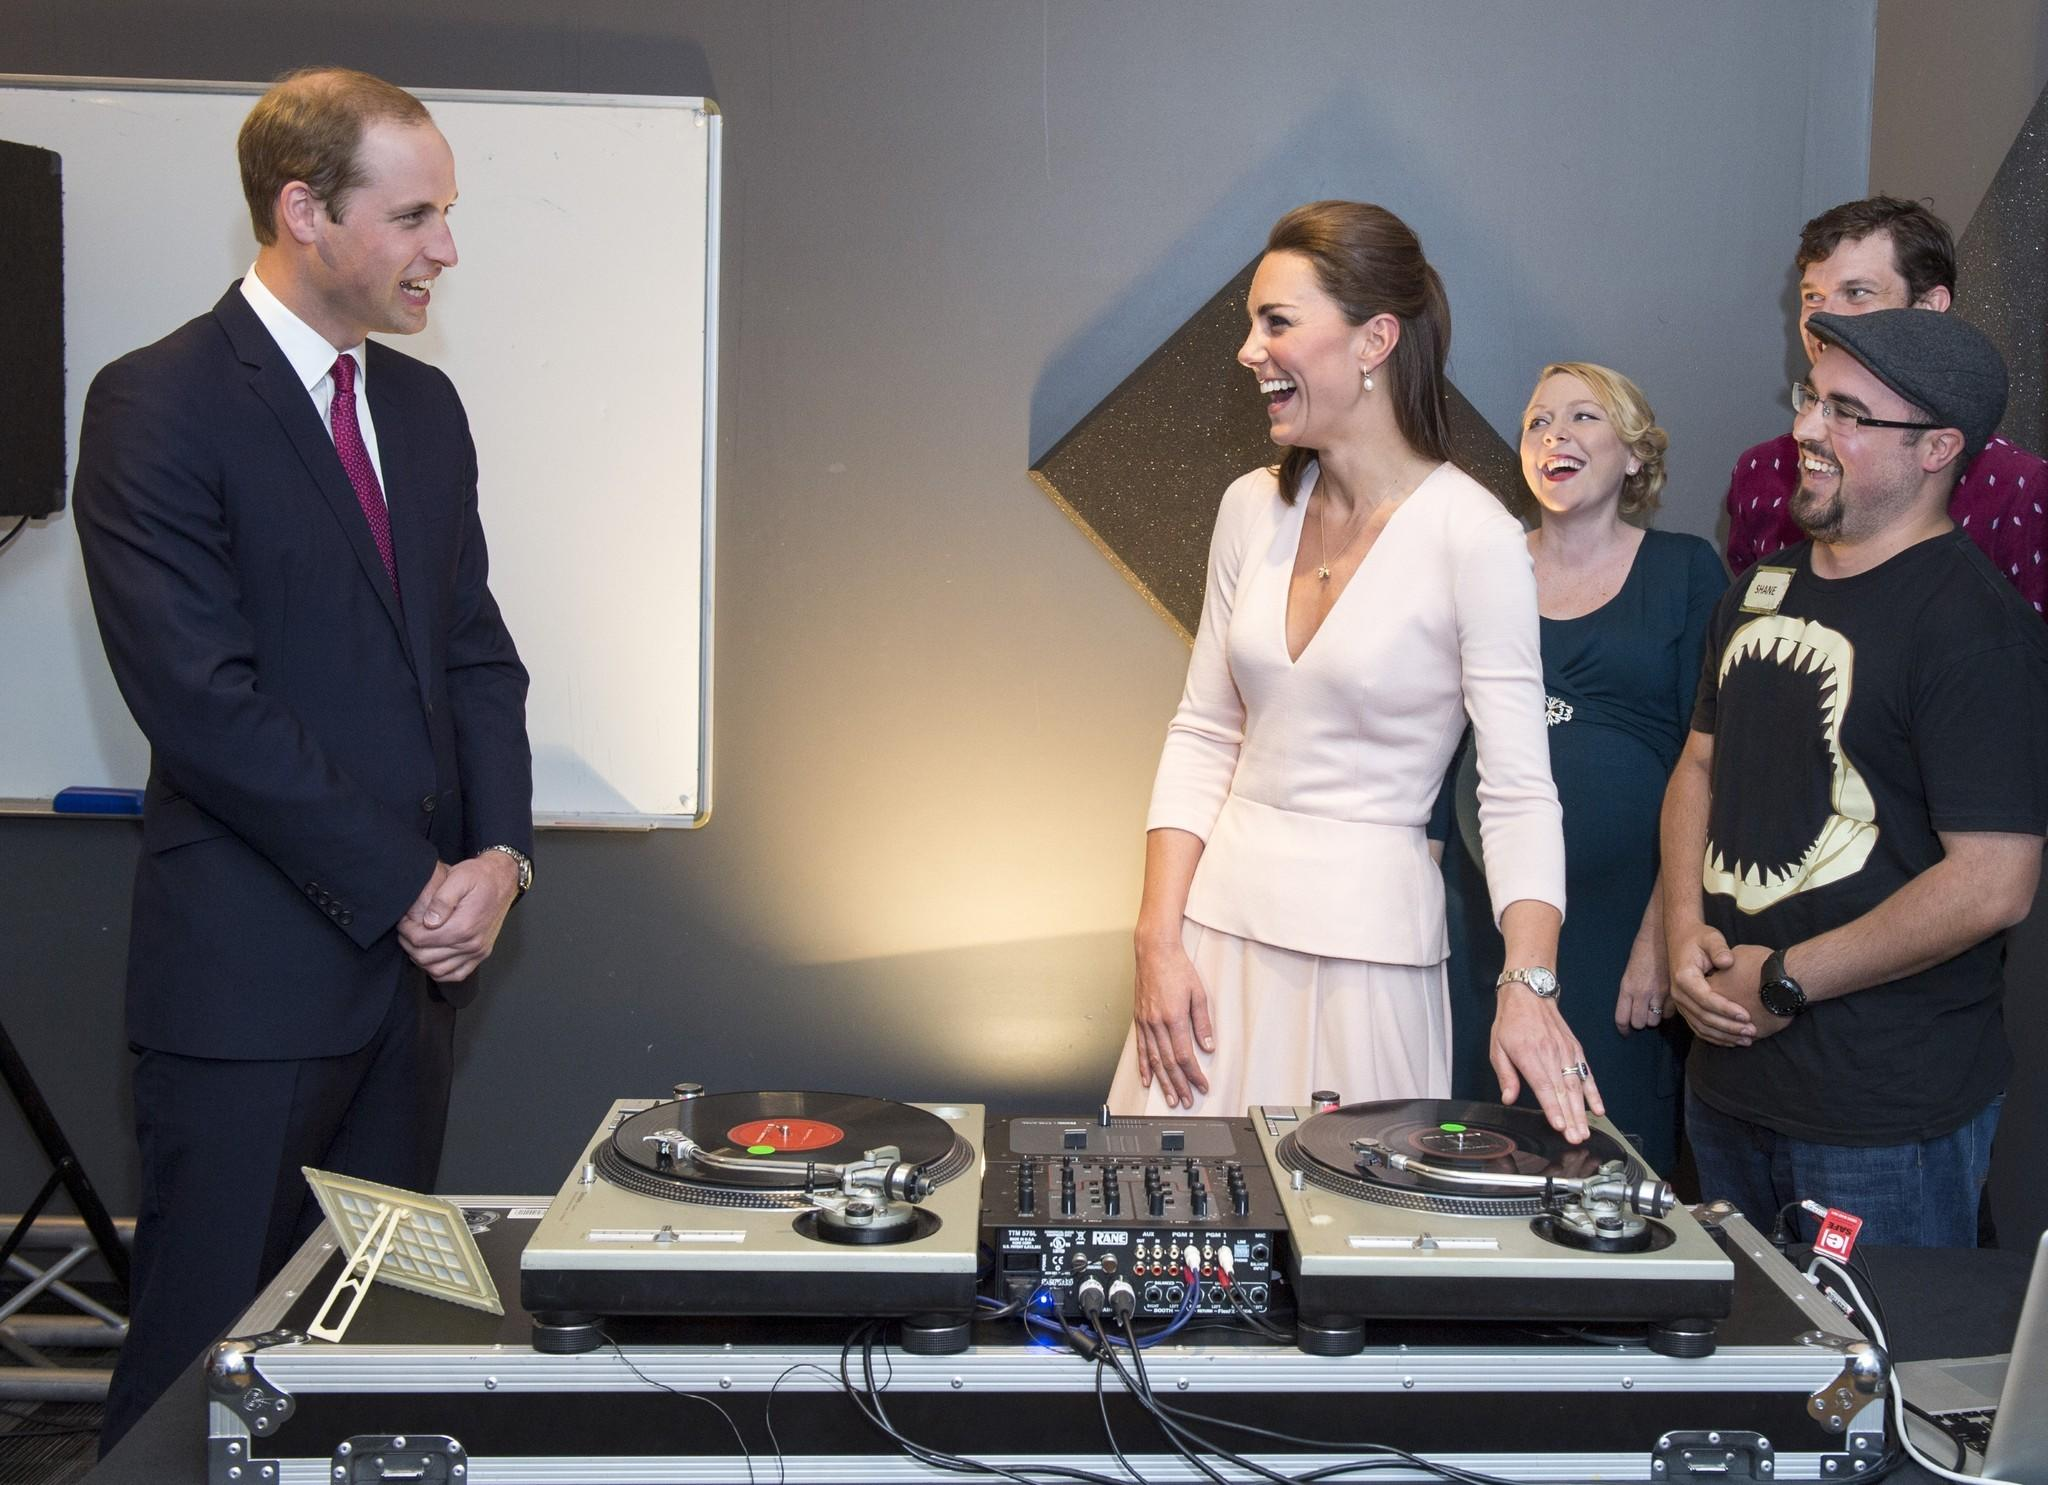 Catherine, Duchess of Cambridge and Prince William, Duke of Cambridge laugh as they are shown how to play on DJ decks at the Northern Sound System, a youth community center in a suburb of Adelaide, Australia.